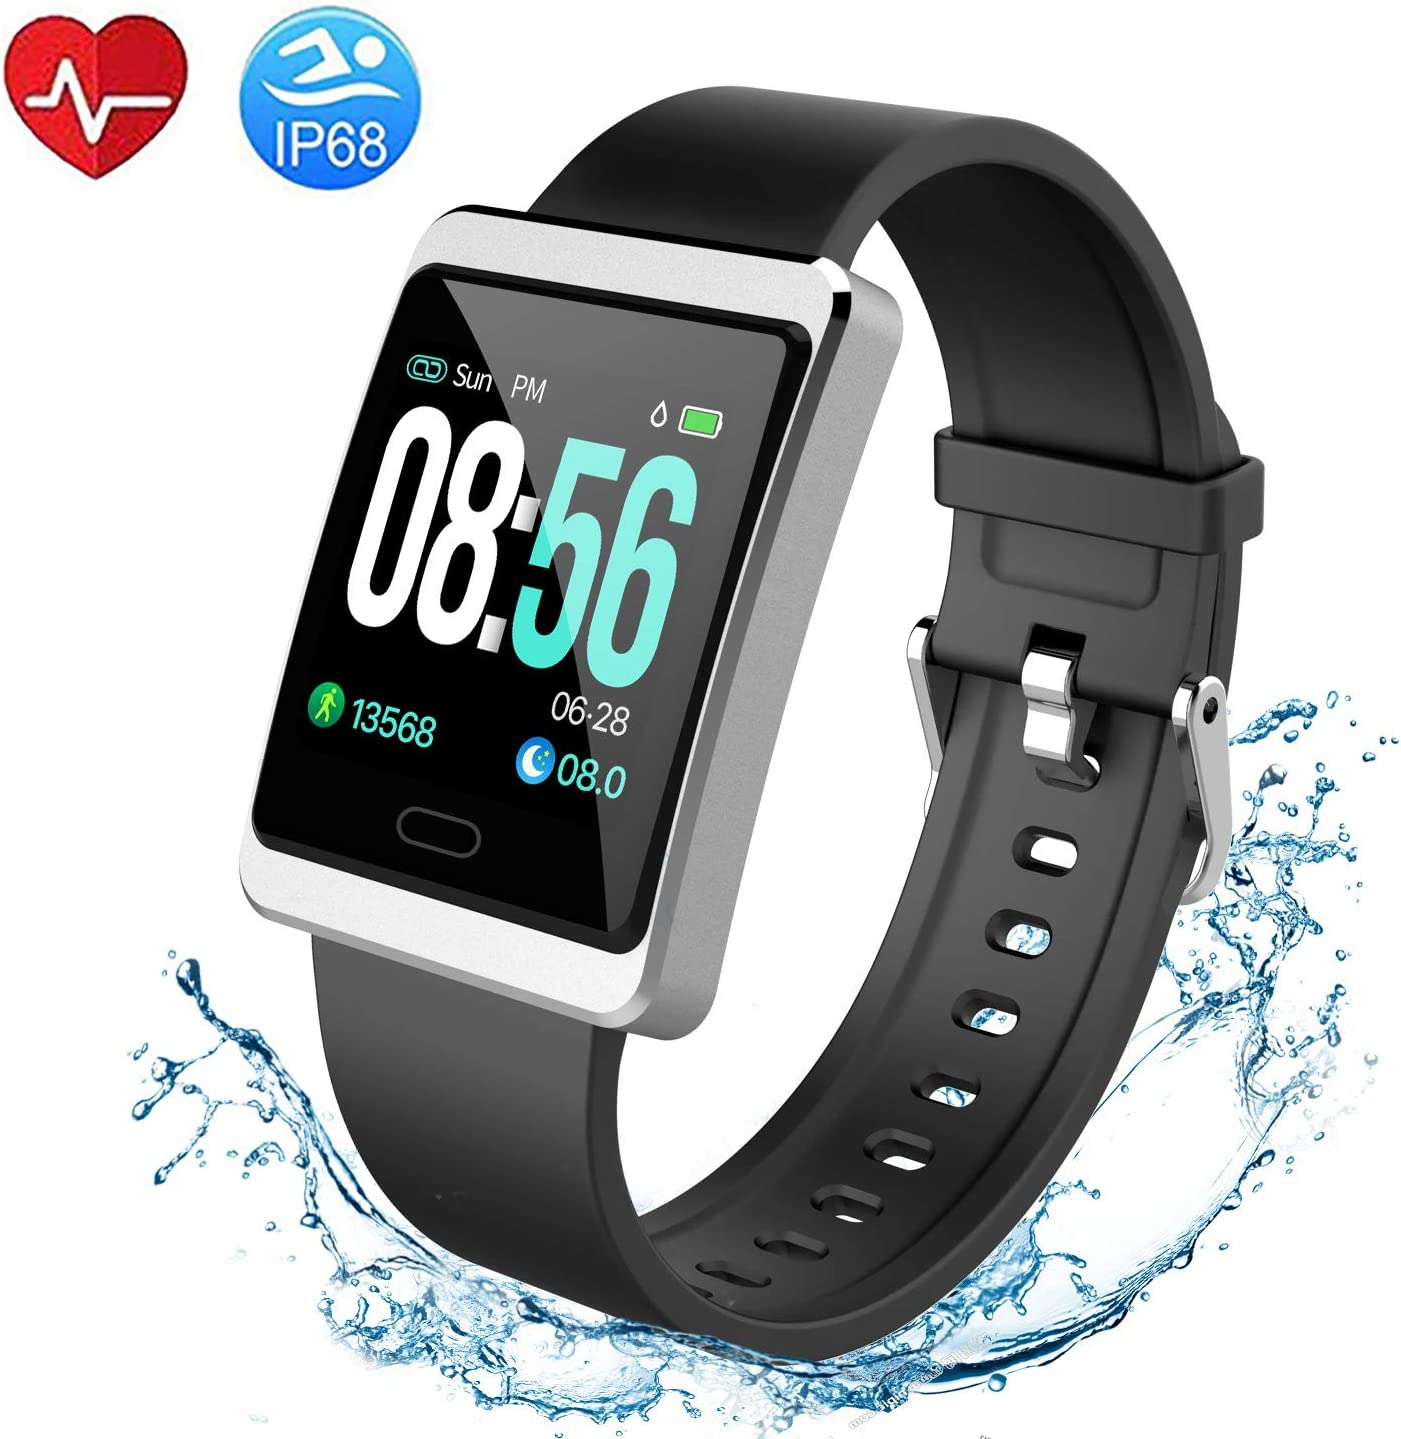 VANKANY Fitness Tracker HR, Waterproof Activity Tracker Watch with Heart Rate Monitor, Step Counter, Calorie Counter, Pedometer Watch for Kids Women and Men Compatible with Samsung Apple iPhone